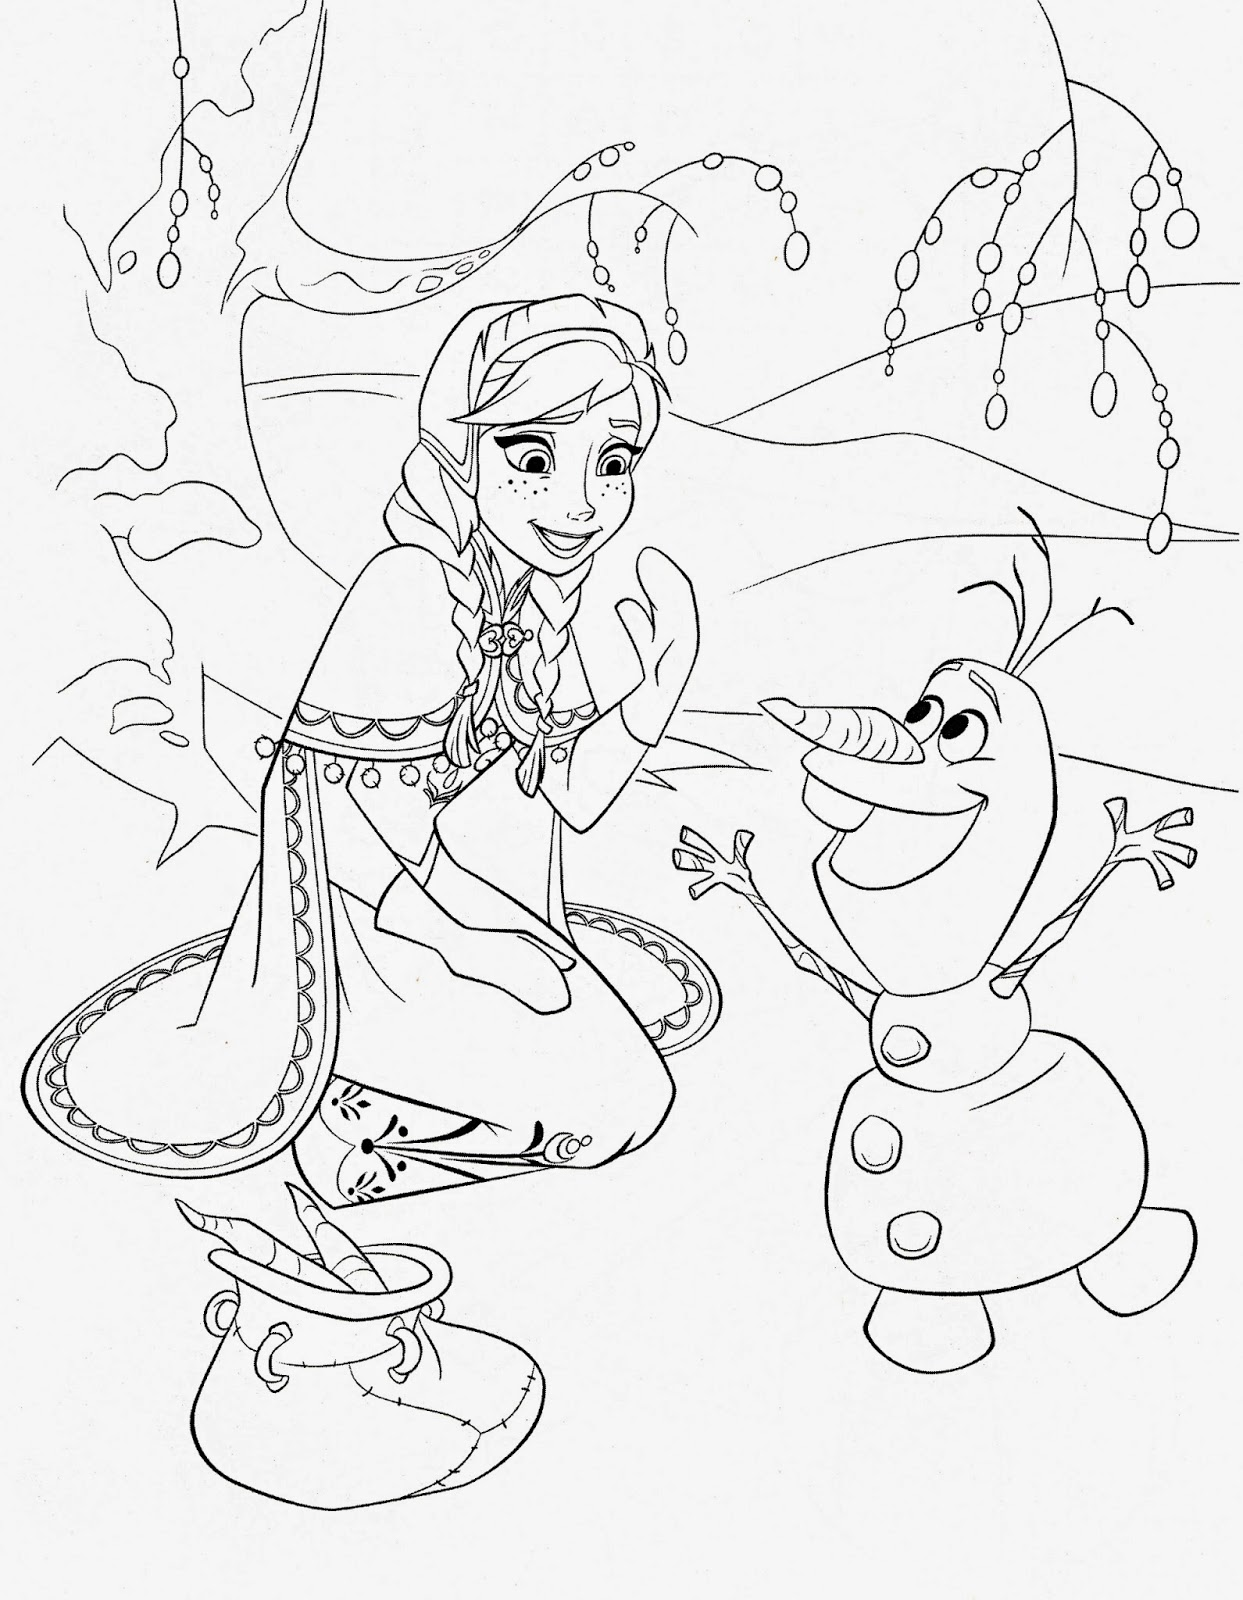 disney frozen printable coloring pages | FUN & LEARN : Free worksheets for kid: Frozen , Disney ...